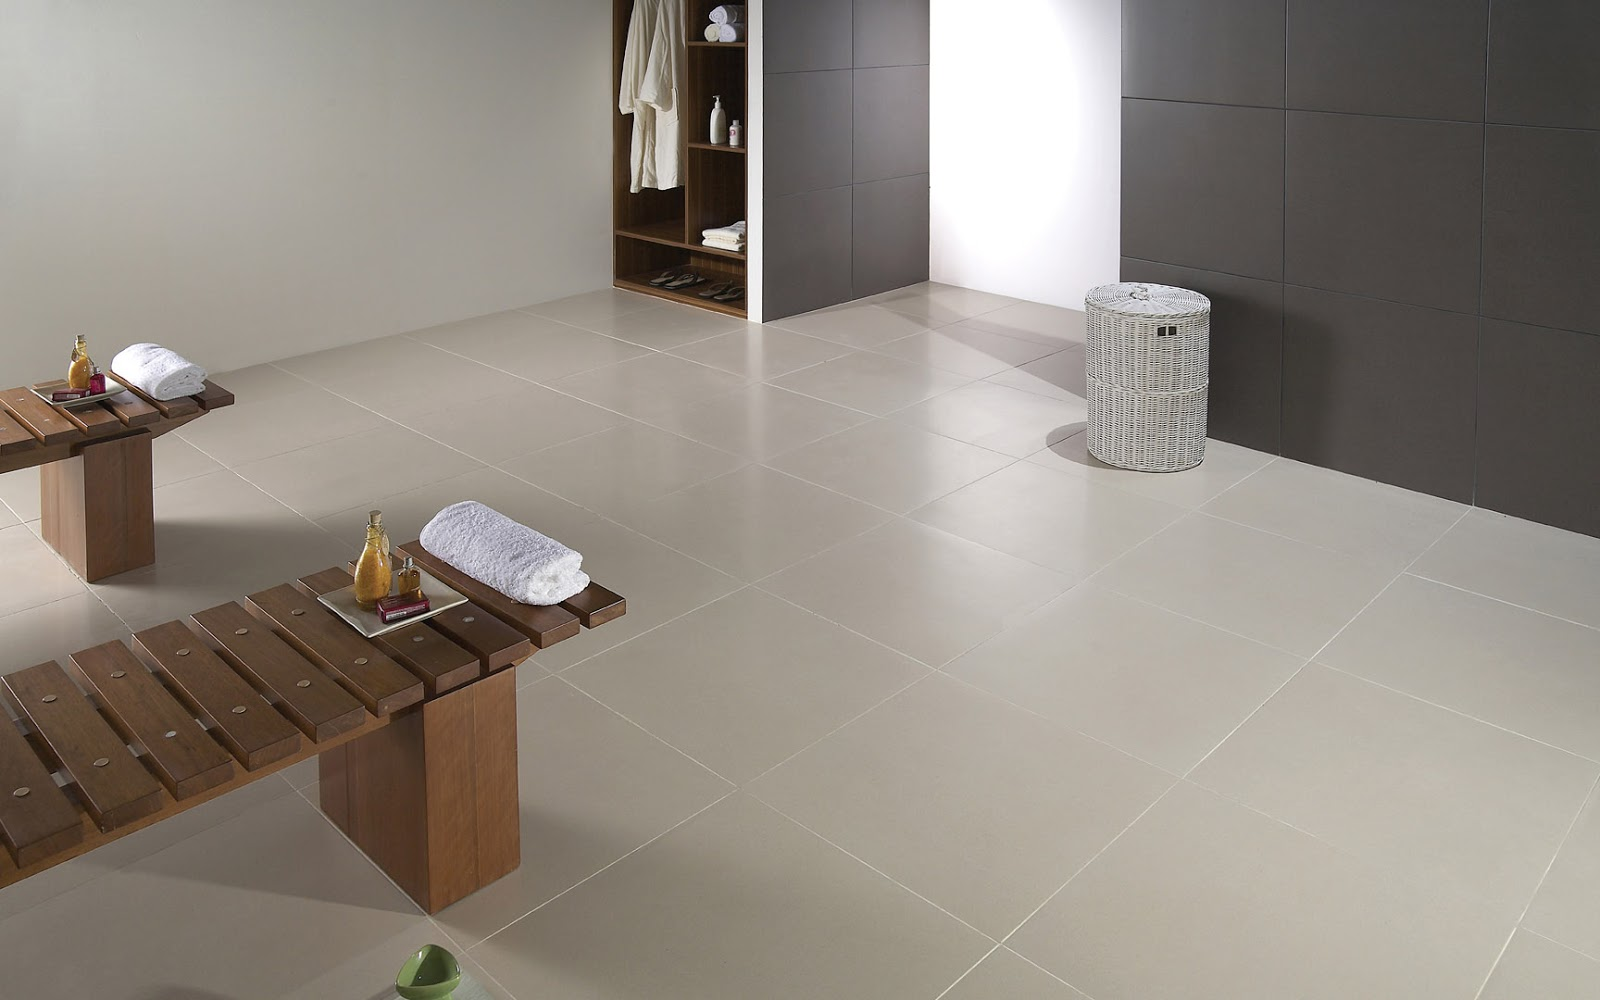 Sell floor tile roman adelaide coffee g362242 from indonesia by roman adelaide category floor dailygadgetfo Image collections